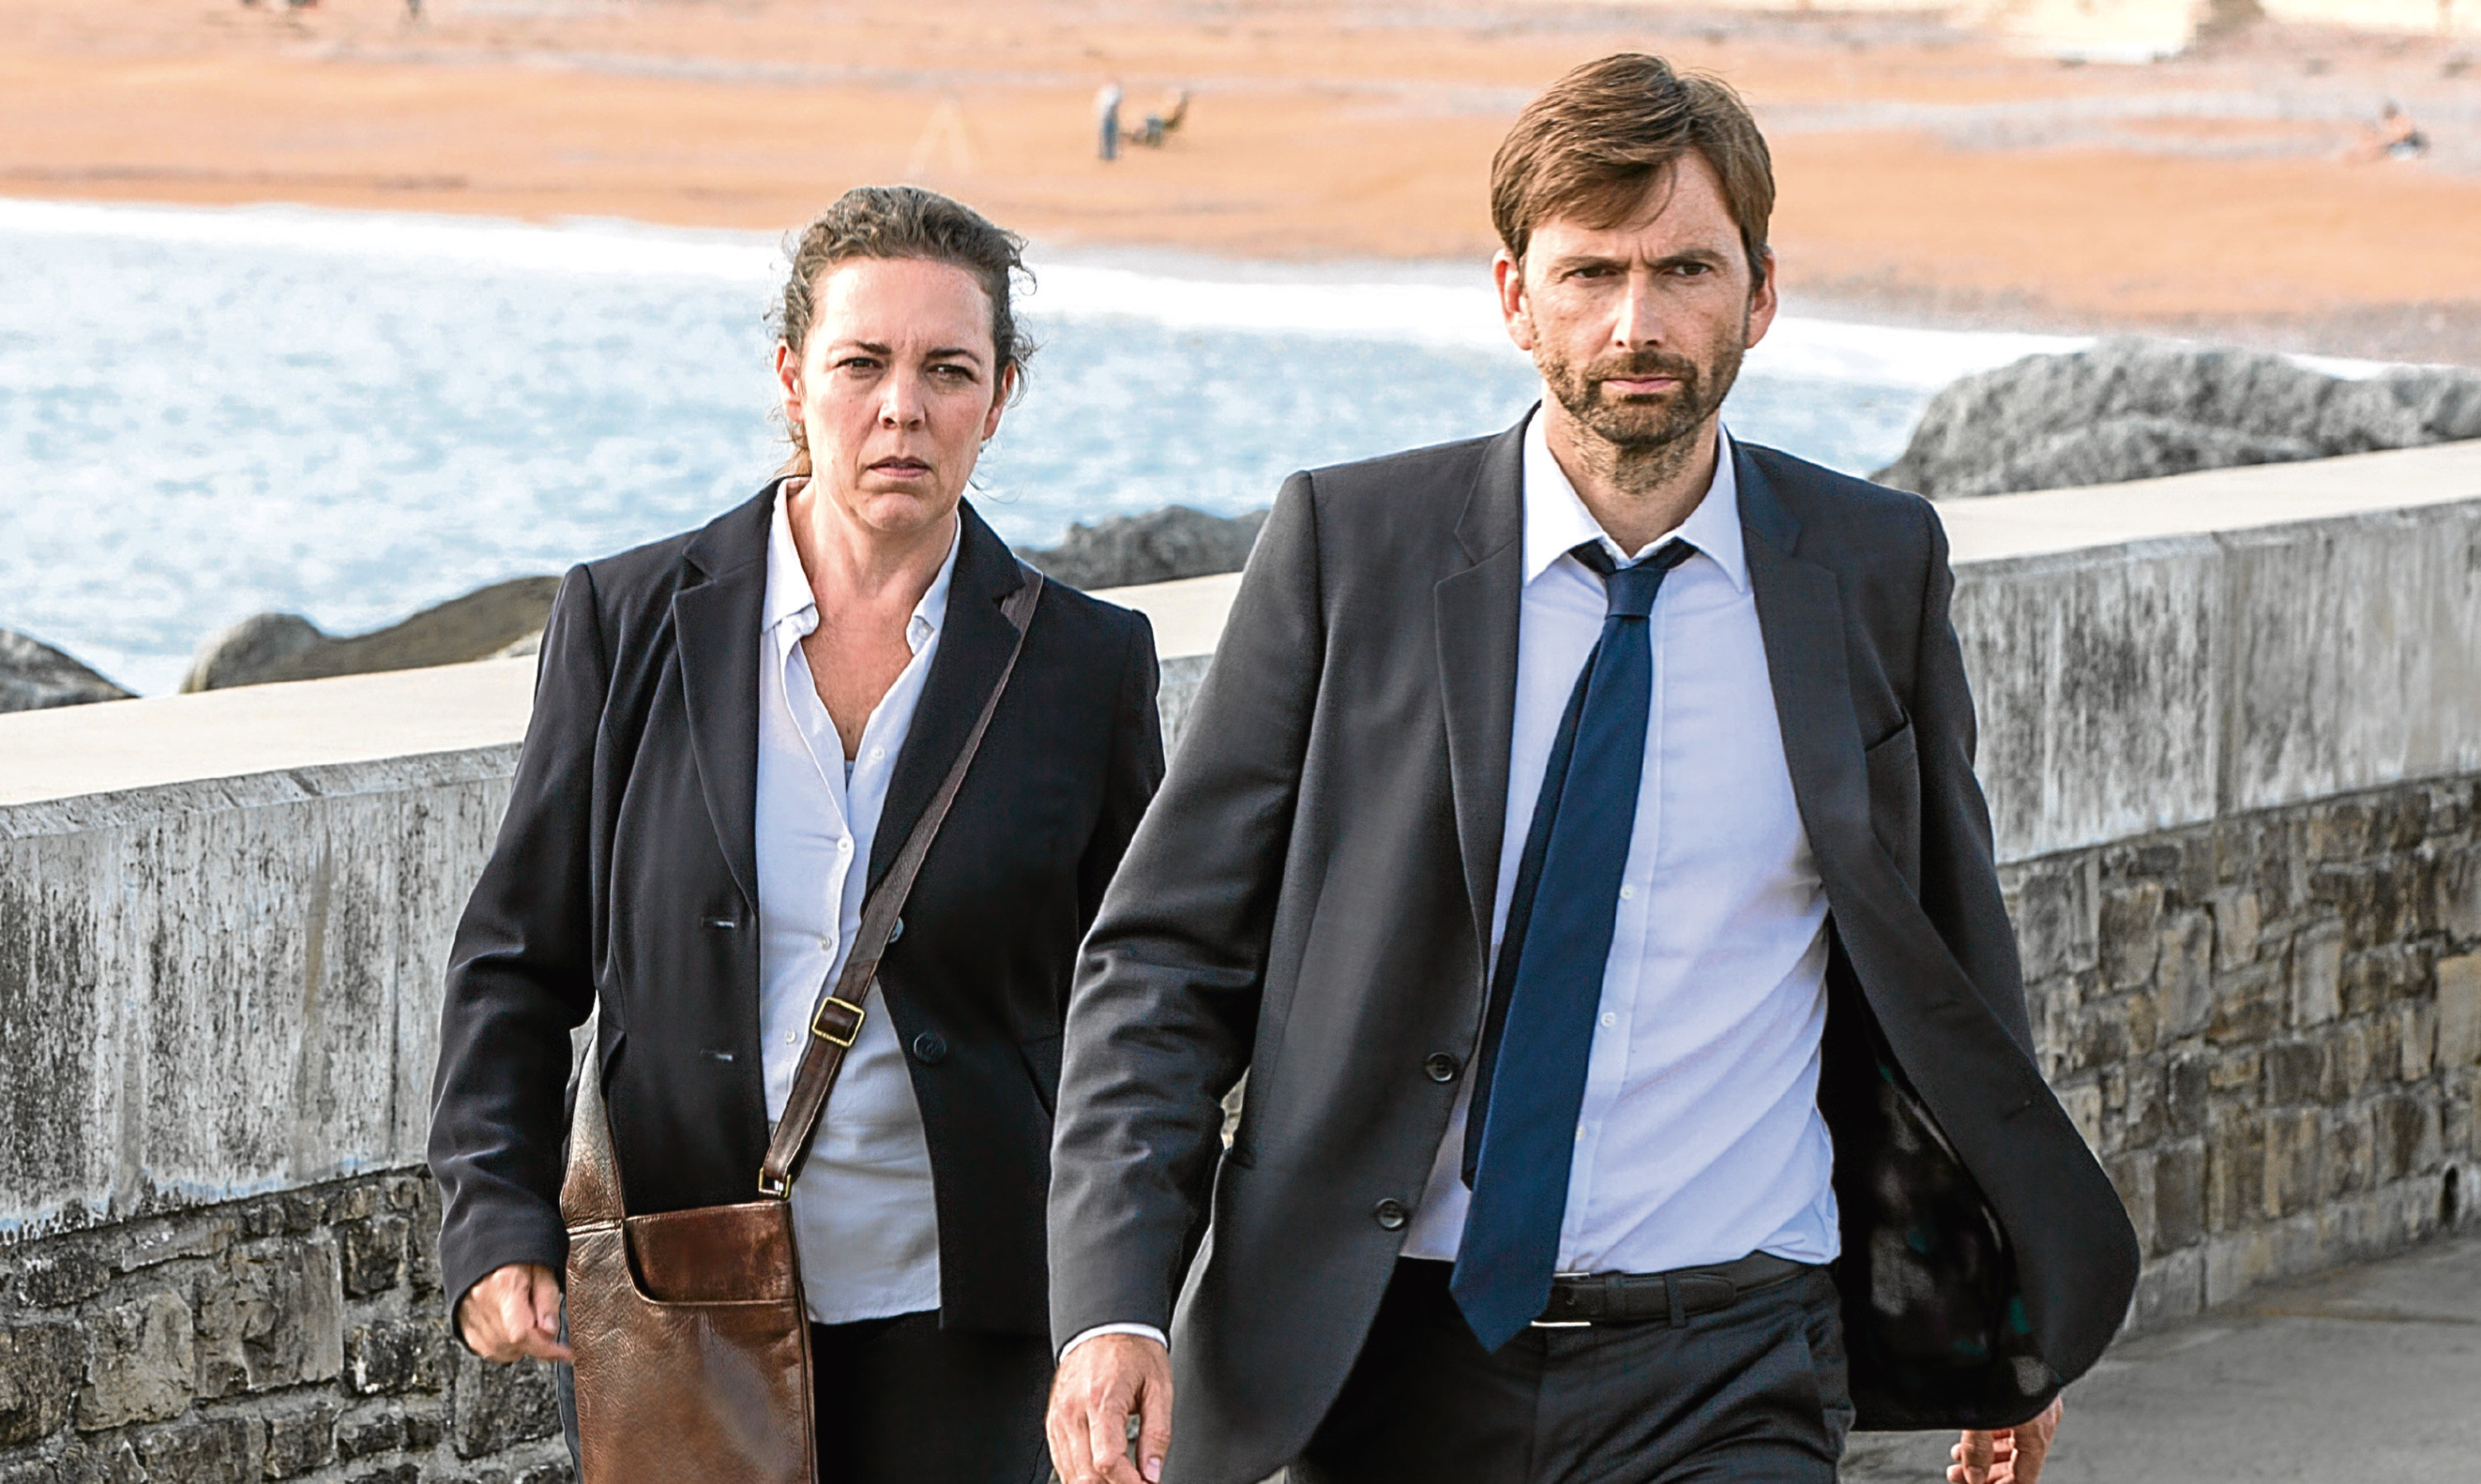 Olivia Colman and David Tennant in Broadchurch, which has gripped Lucy and confirmed her fears about living in small communities too.